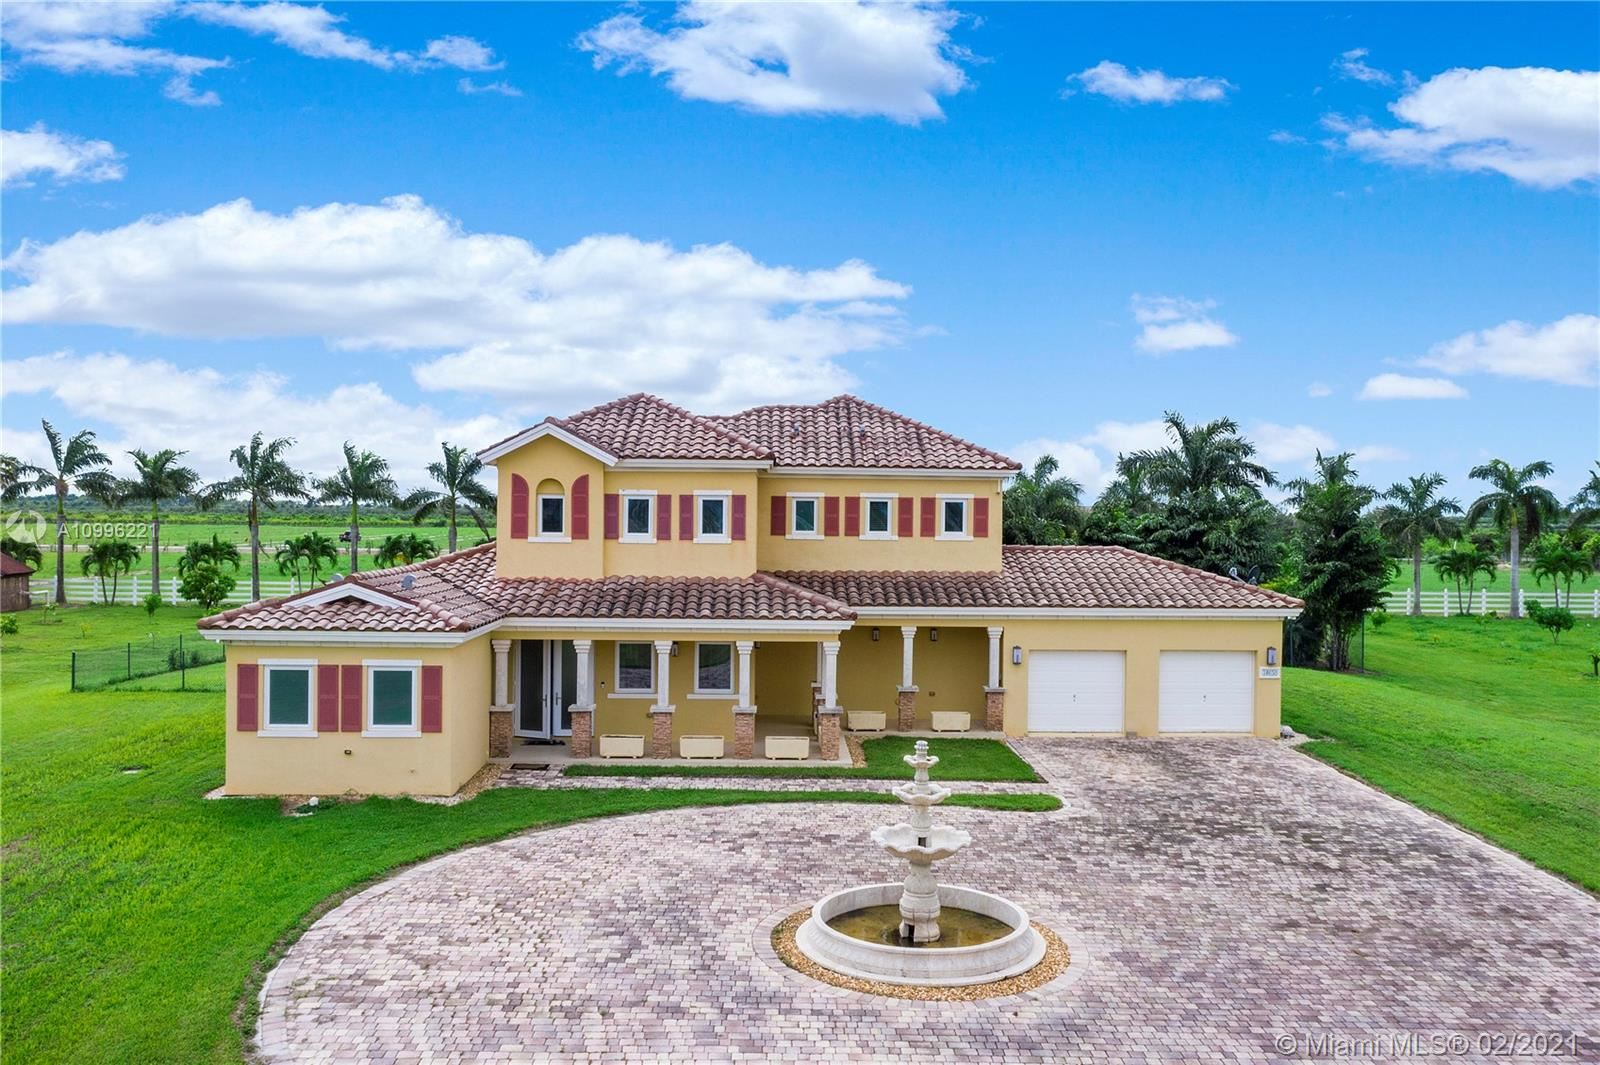 34650 SW 218th Ave, Homestead, FL 33034 - #: A10996221